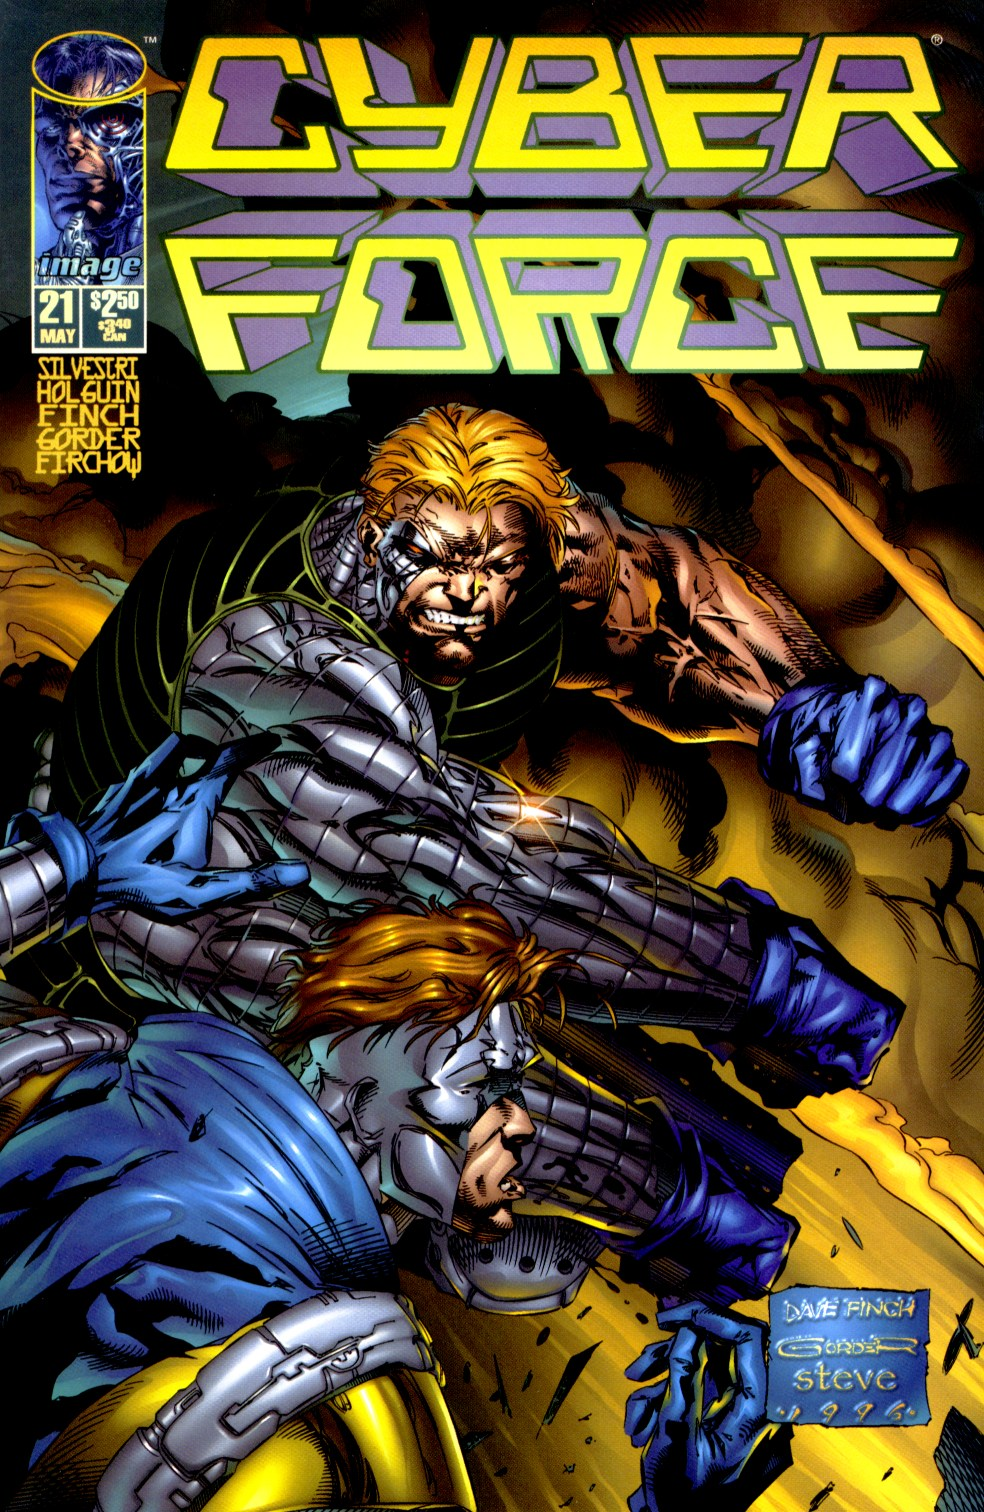 Cyberforce (1993) issue 21 - Page 1